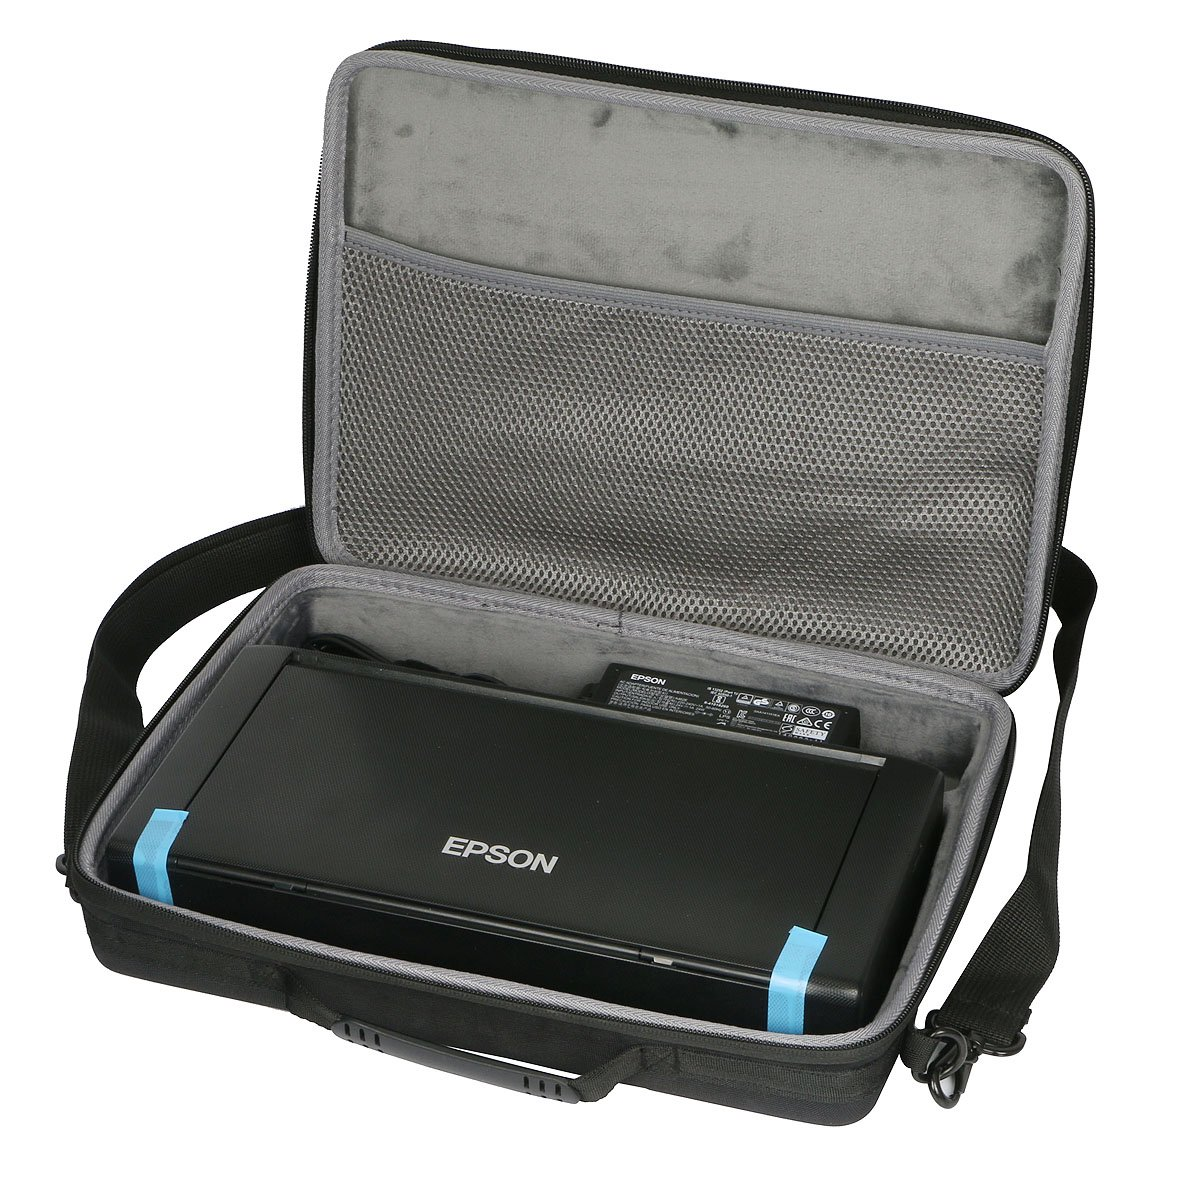 Co2Crea Hard Travel Case Bag for Epson WorkForce WF-100 Wireless Mobile Printer by Co2Crea